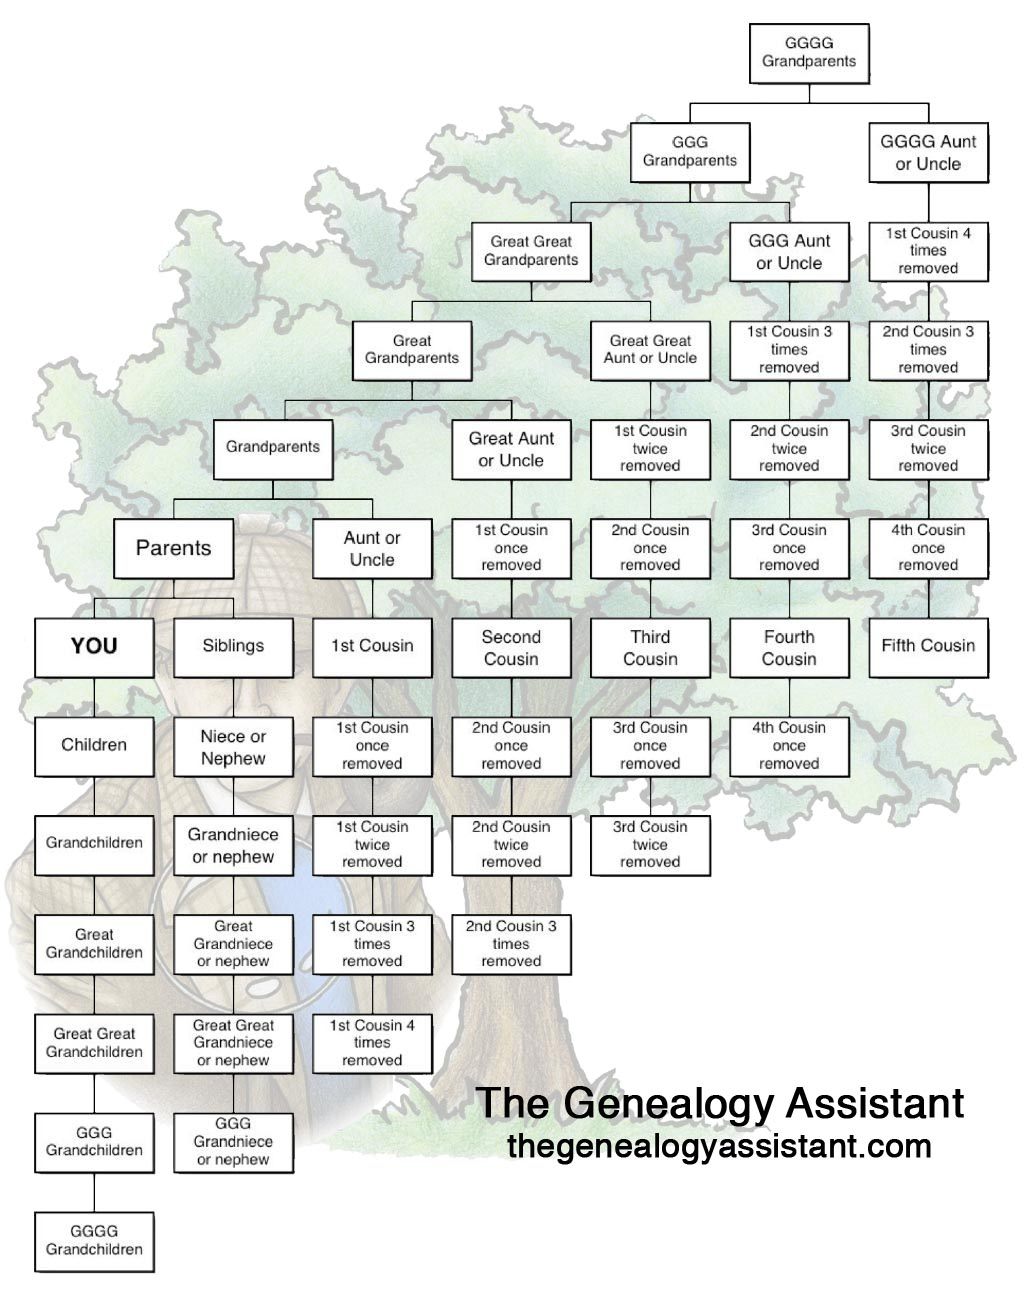 The genealogy assistant family relationships in polish relationshiptableen1024a ccuart Image collections